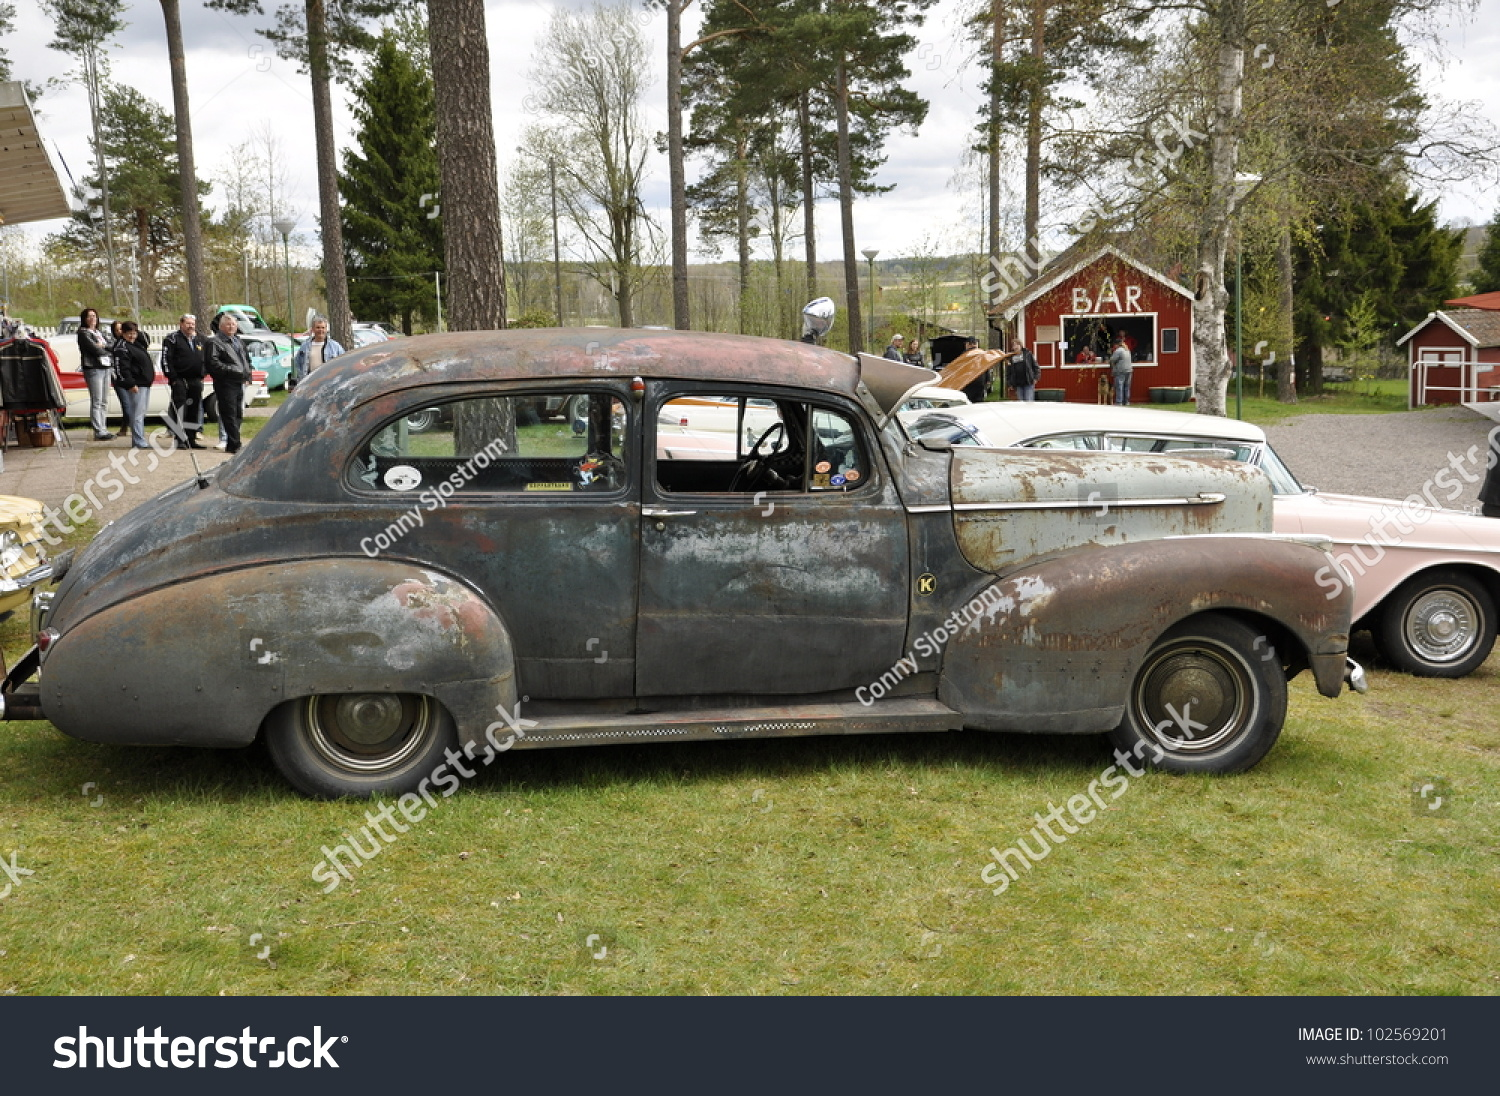 Heby Sweden May 12 Unidentified People Stock Photo 102569201 ...